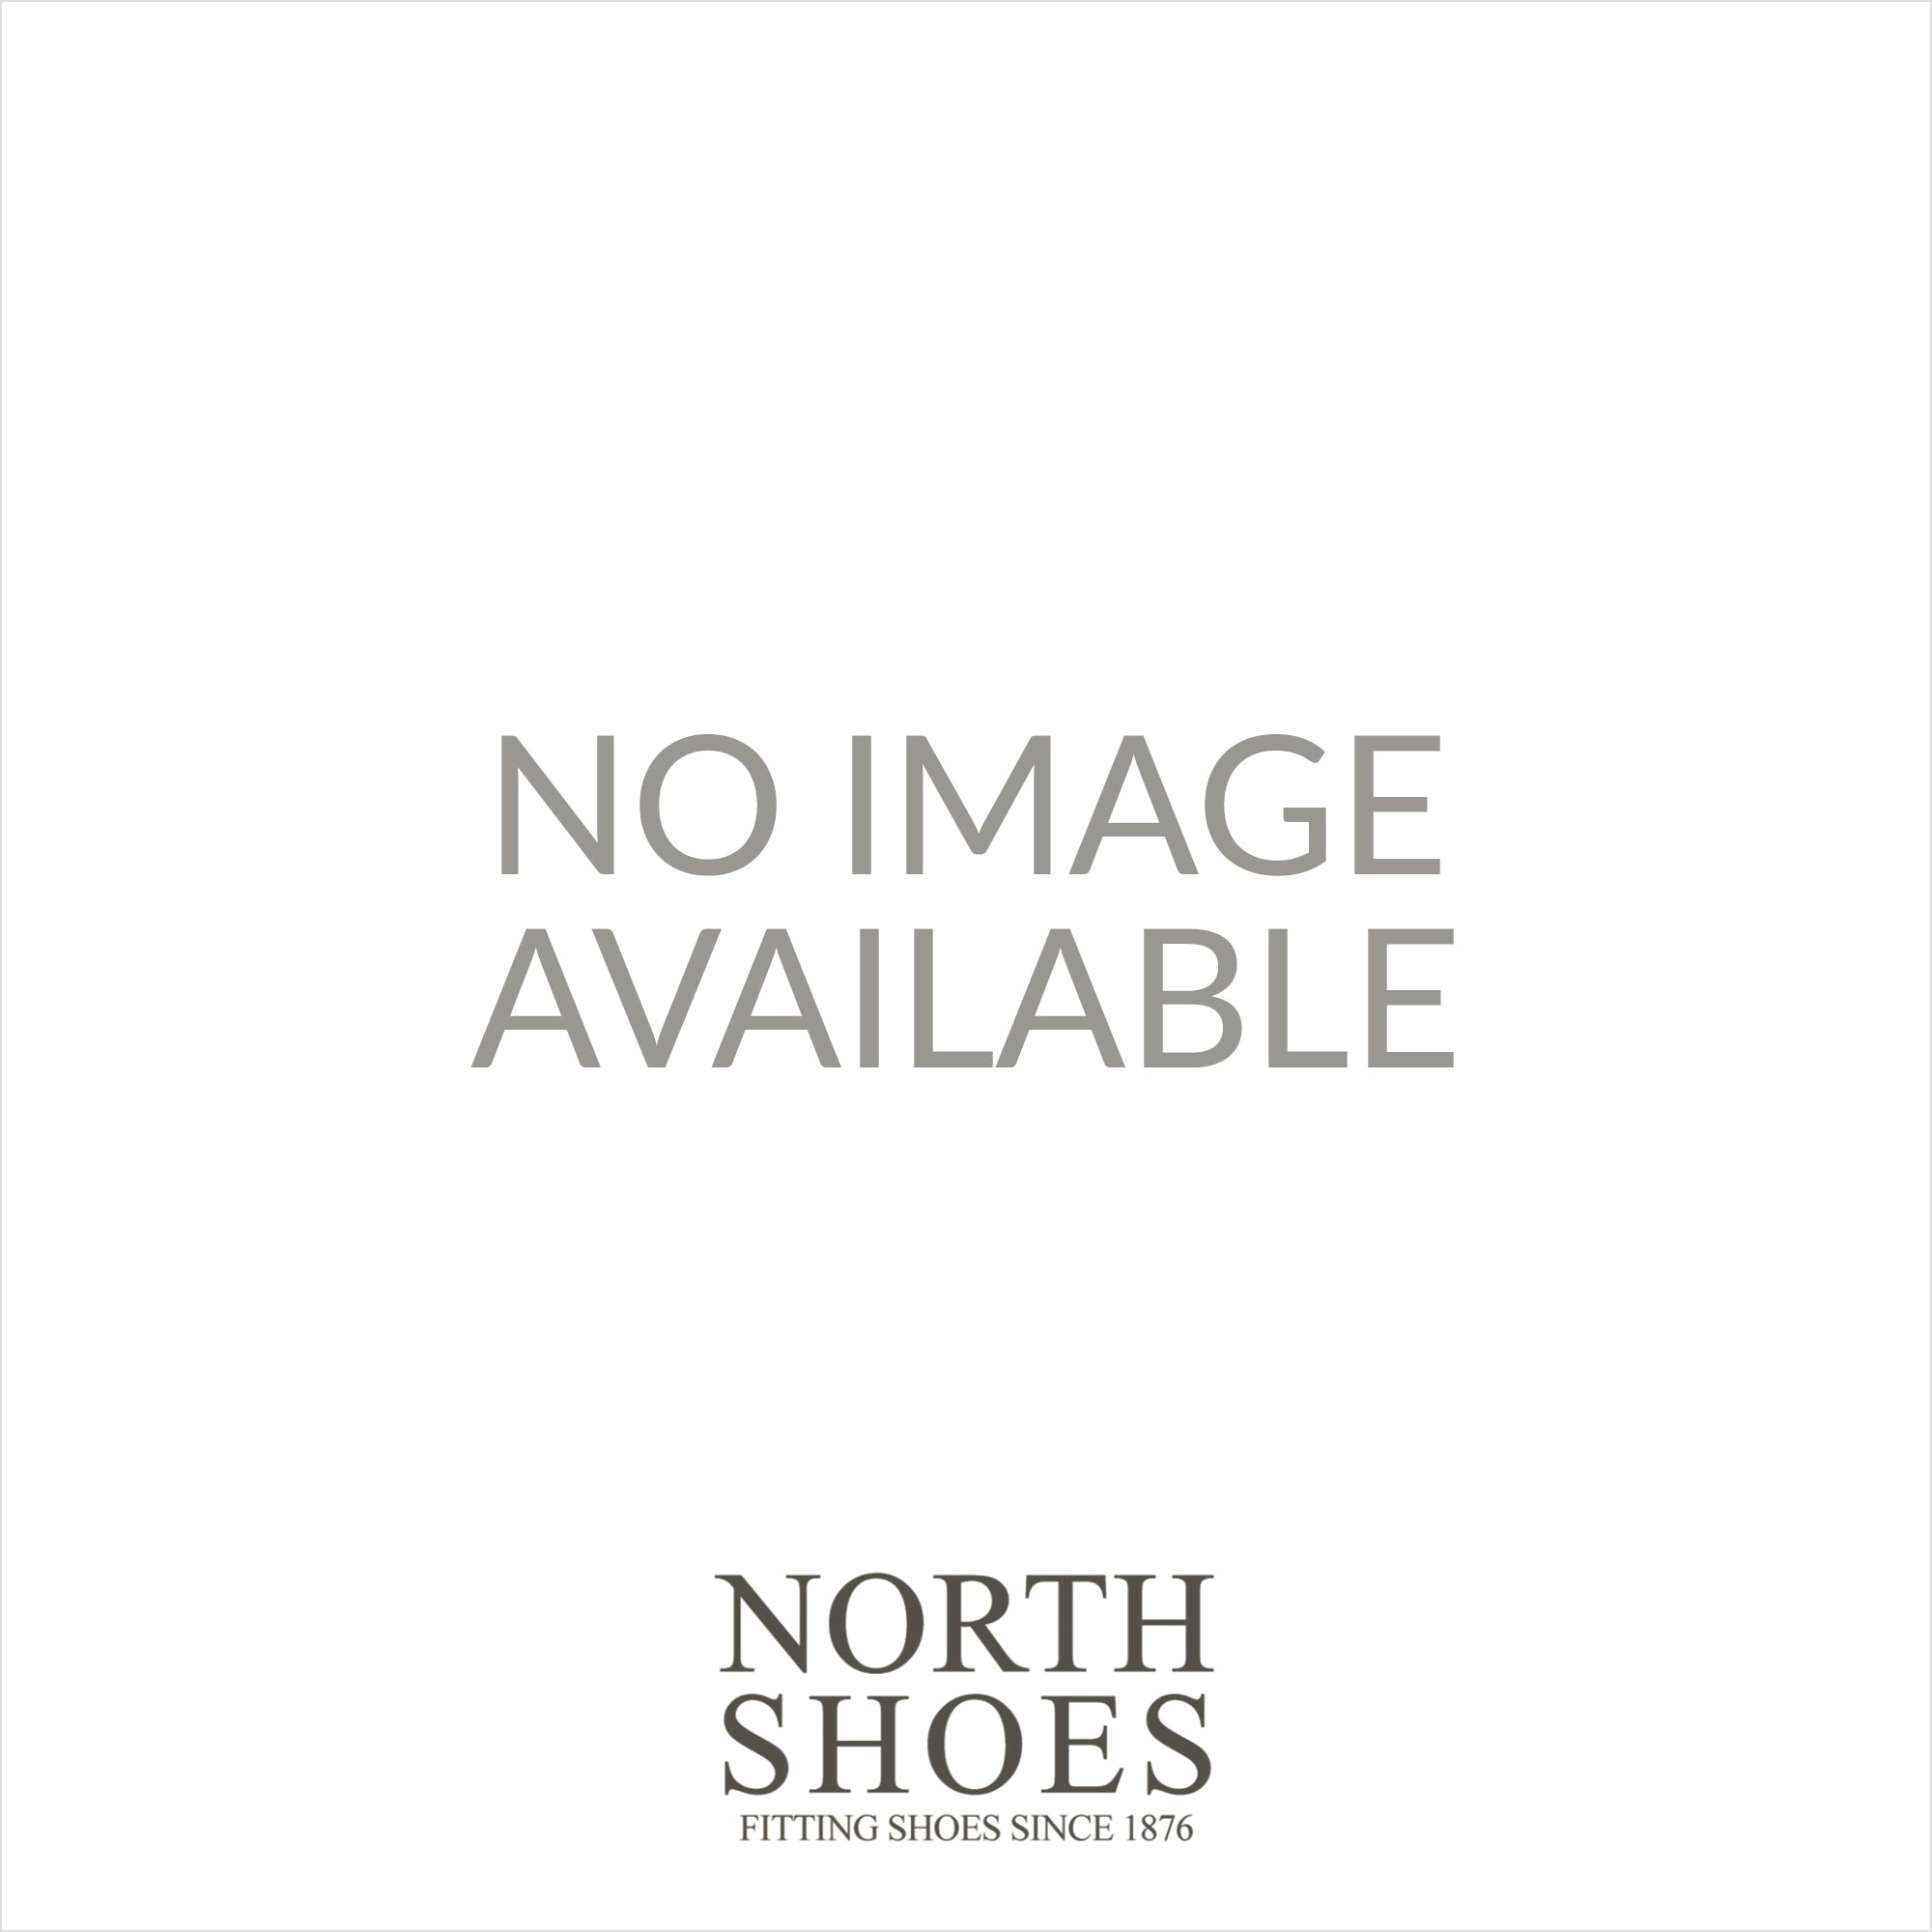 ea8a7abbc7b Clarks Un Blush Go Navy Suede Leather Womens Slip On Loafer Shoes - Clarks  from North Shoes UK